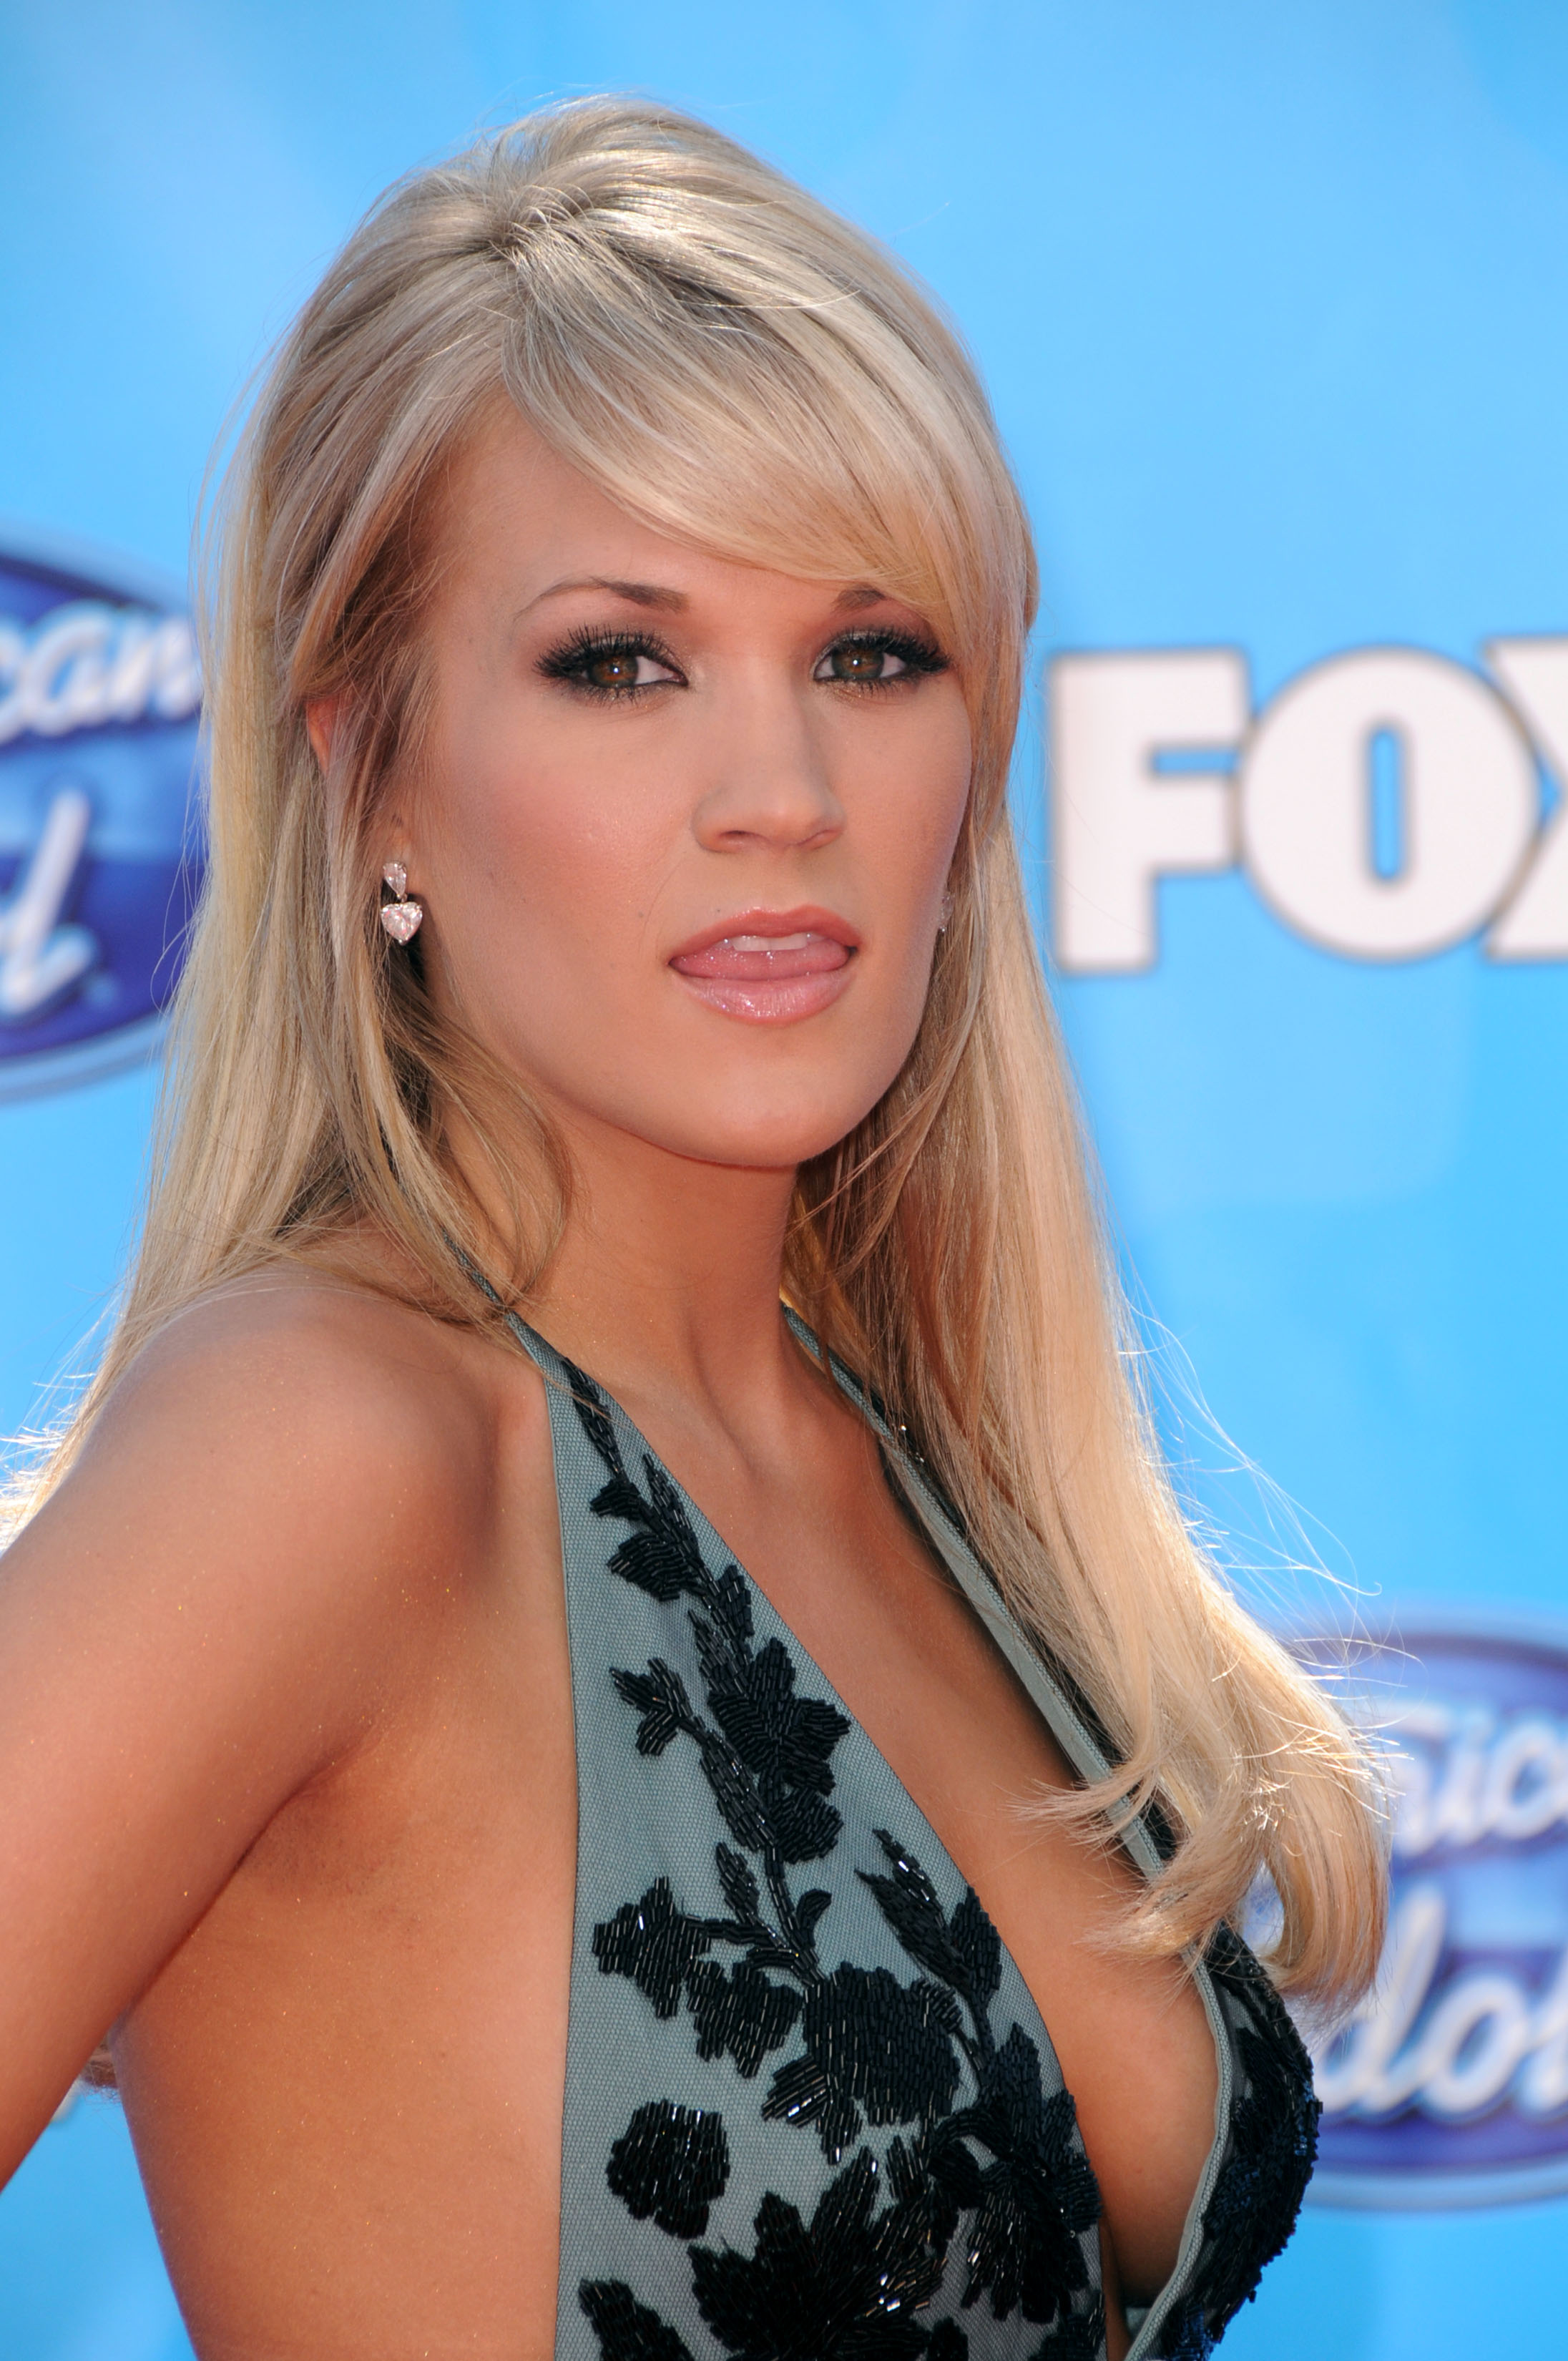 http://pictures.platinum-celebs.com/carrie-underwood-nude-photo.jpg